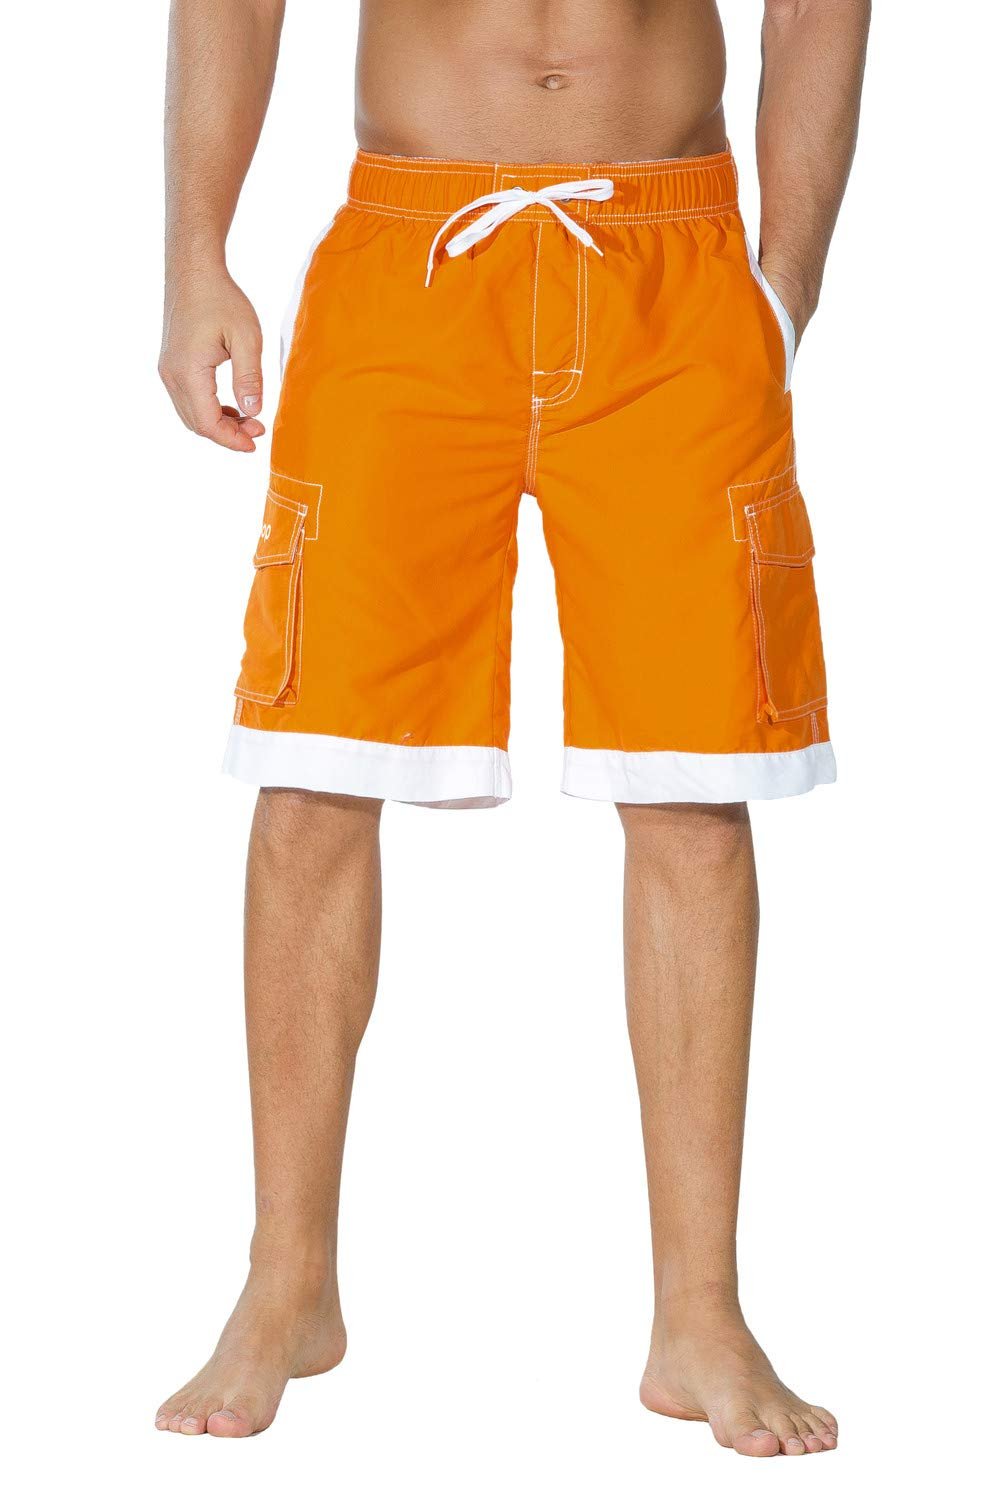 Unitop Men's Hawaiian Casual Fashional Cargo Beach Board Shorts Orange&White 34